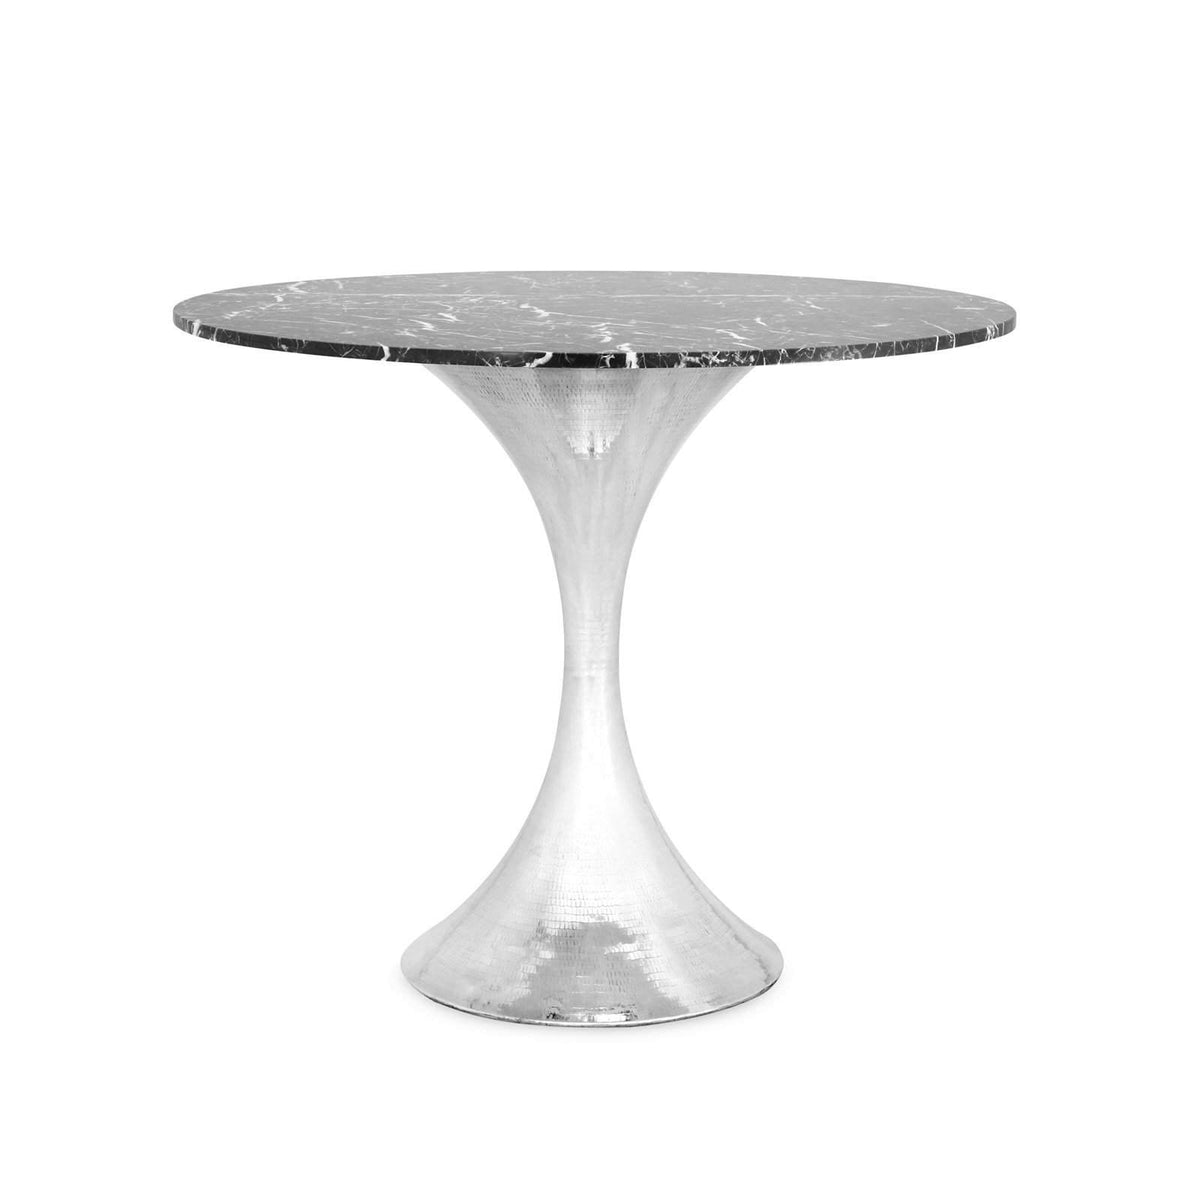 "Bungalow 5 - STOCKHOLM NICKEL CENTER DINING TABLE BASE (PAIRS WITH 36"" TOP, SOLD SEPARATELY) in NICKEL-Bungalow 5-Blue Hand Home"